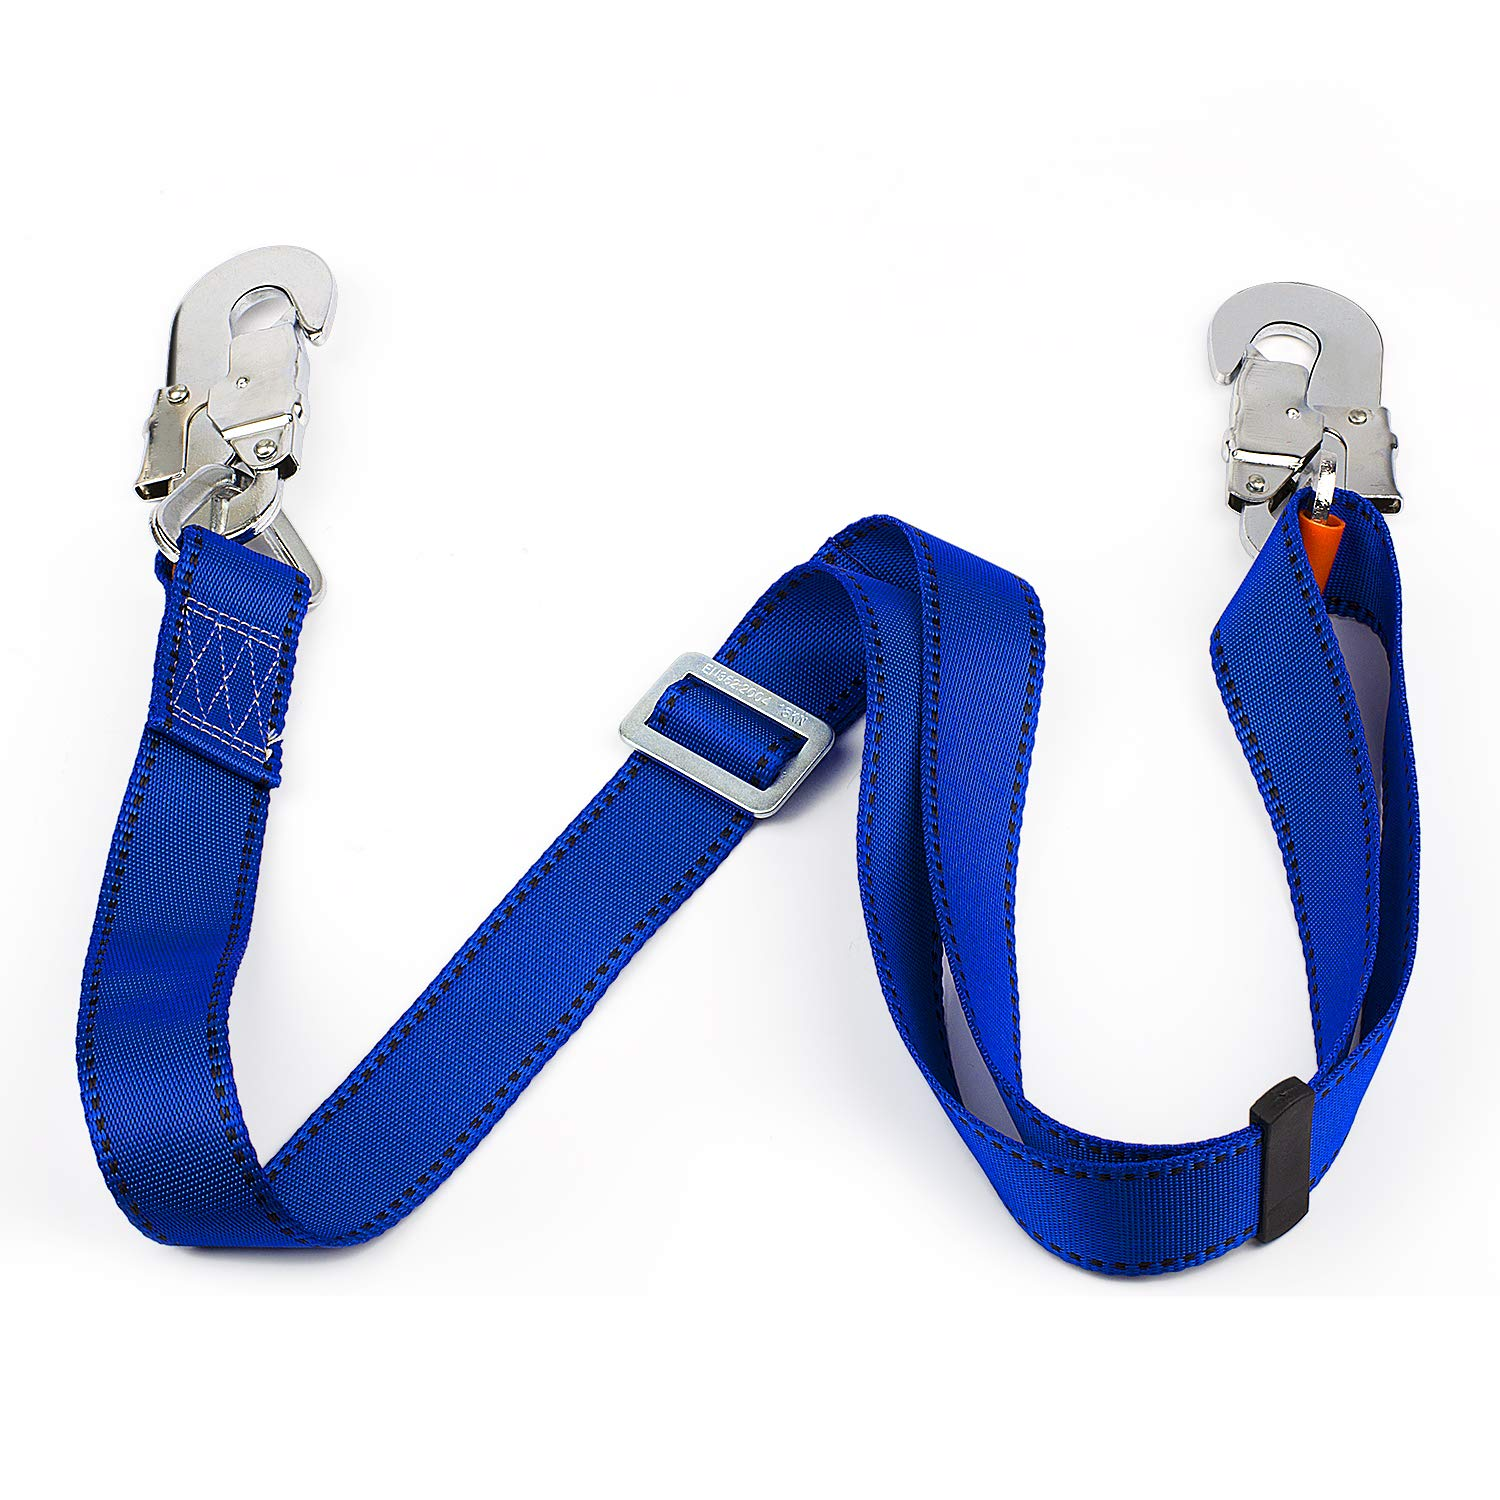 JINGYAT Safety Lanyard Adjustable Non-Shock Absorbing Lanyard from 4-Feet to 6-Feet, Outdoor Climbing Harness Belt Lanyard Fall Protection Rope with Large Snap Hooks by JINGYAT